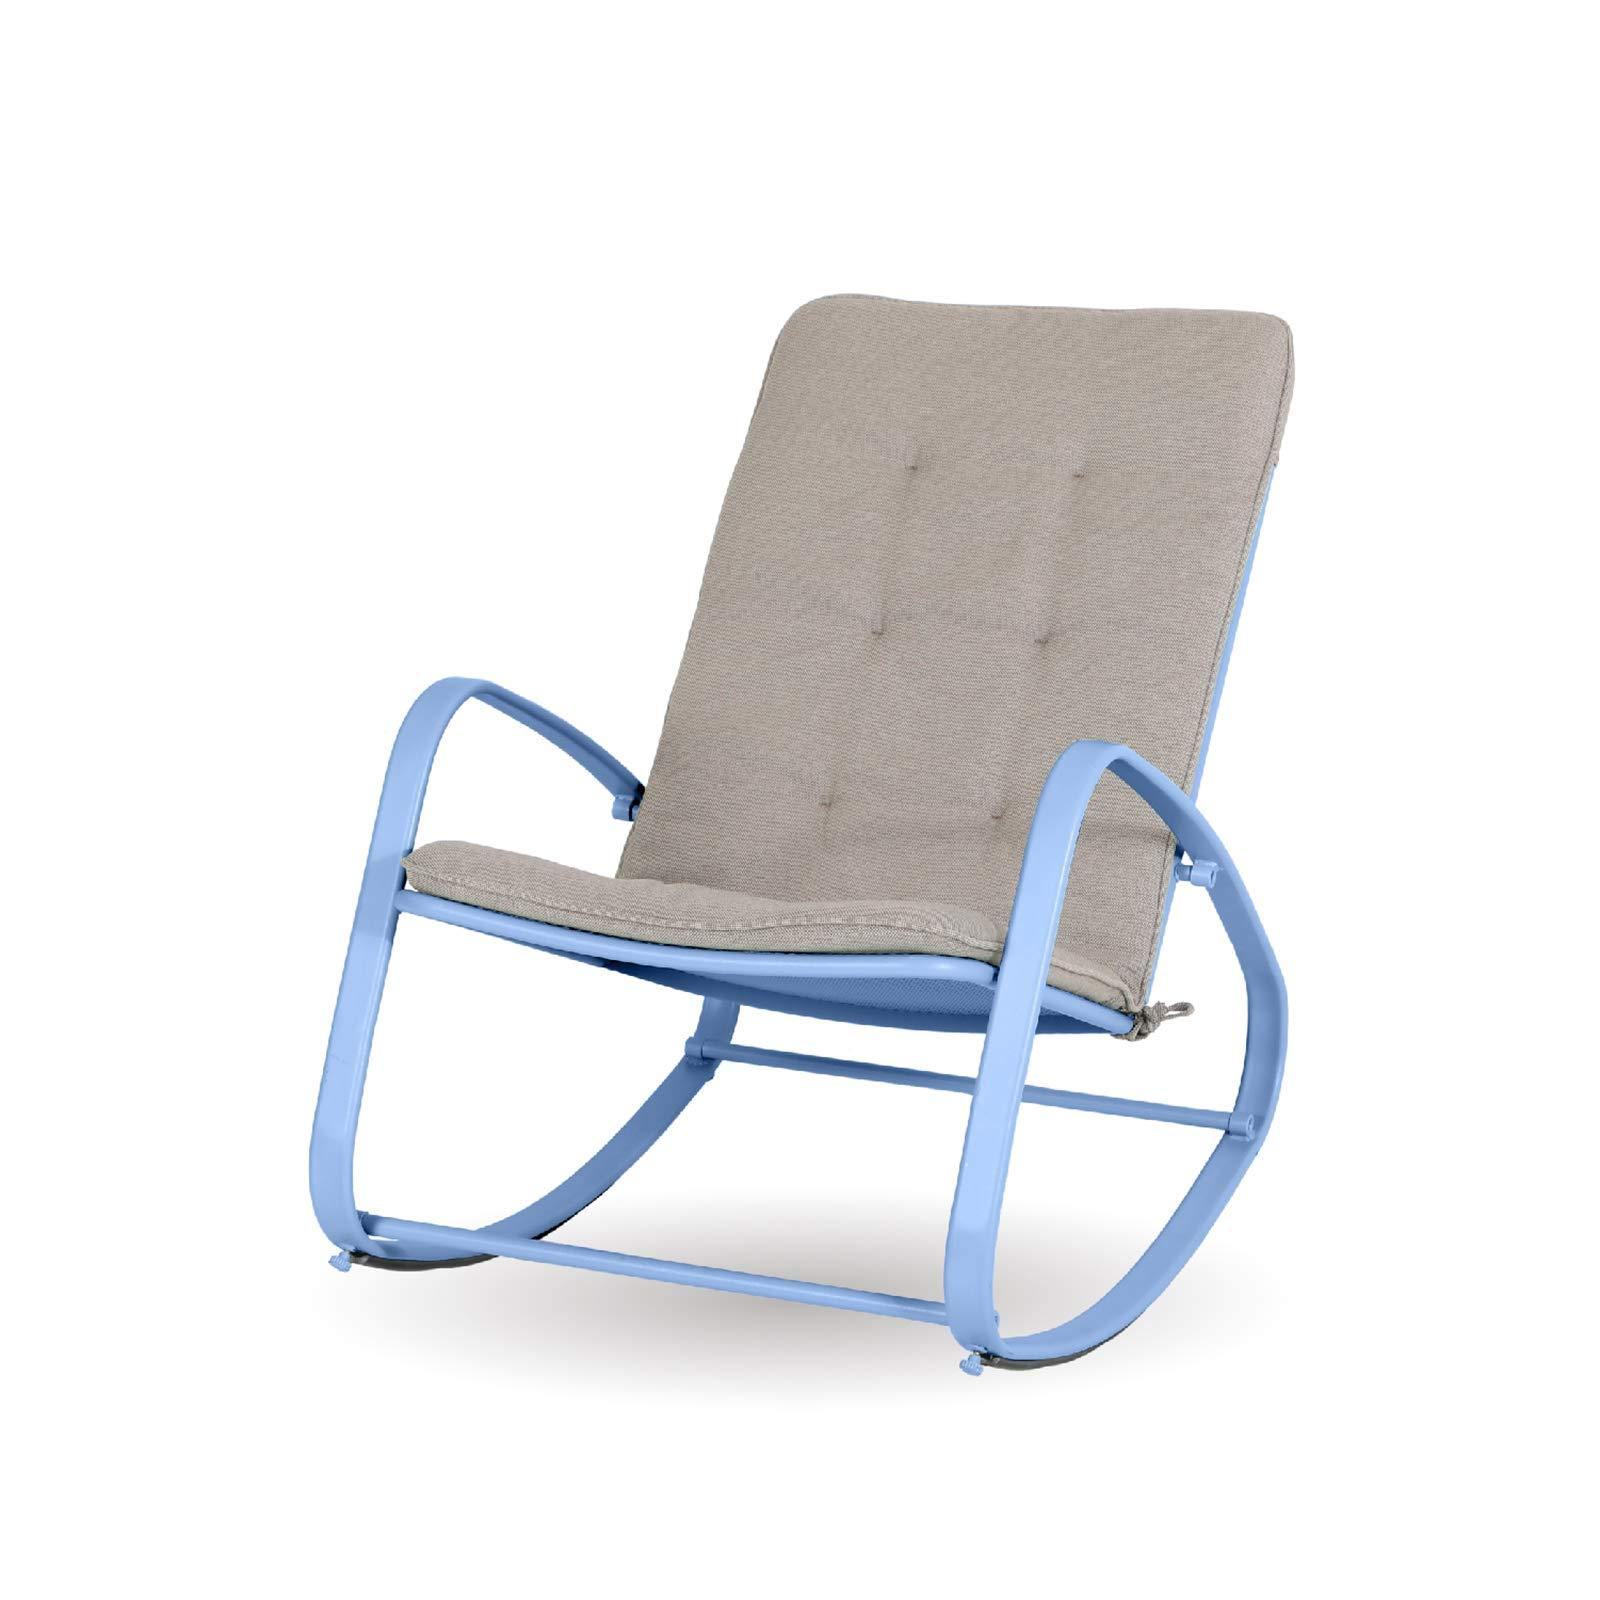 Sophia & William Outdoor Patio Rocking Chair Padded Steel Rocker Chairs Support 300lbs Blue